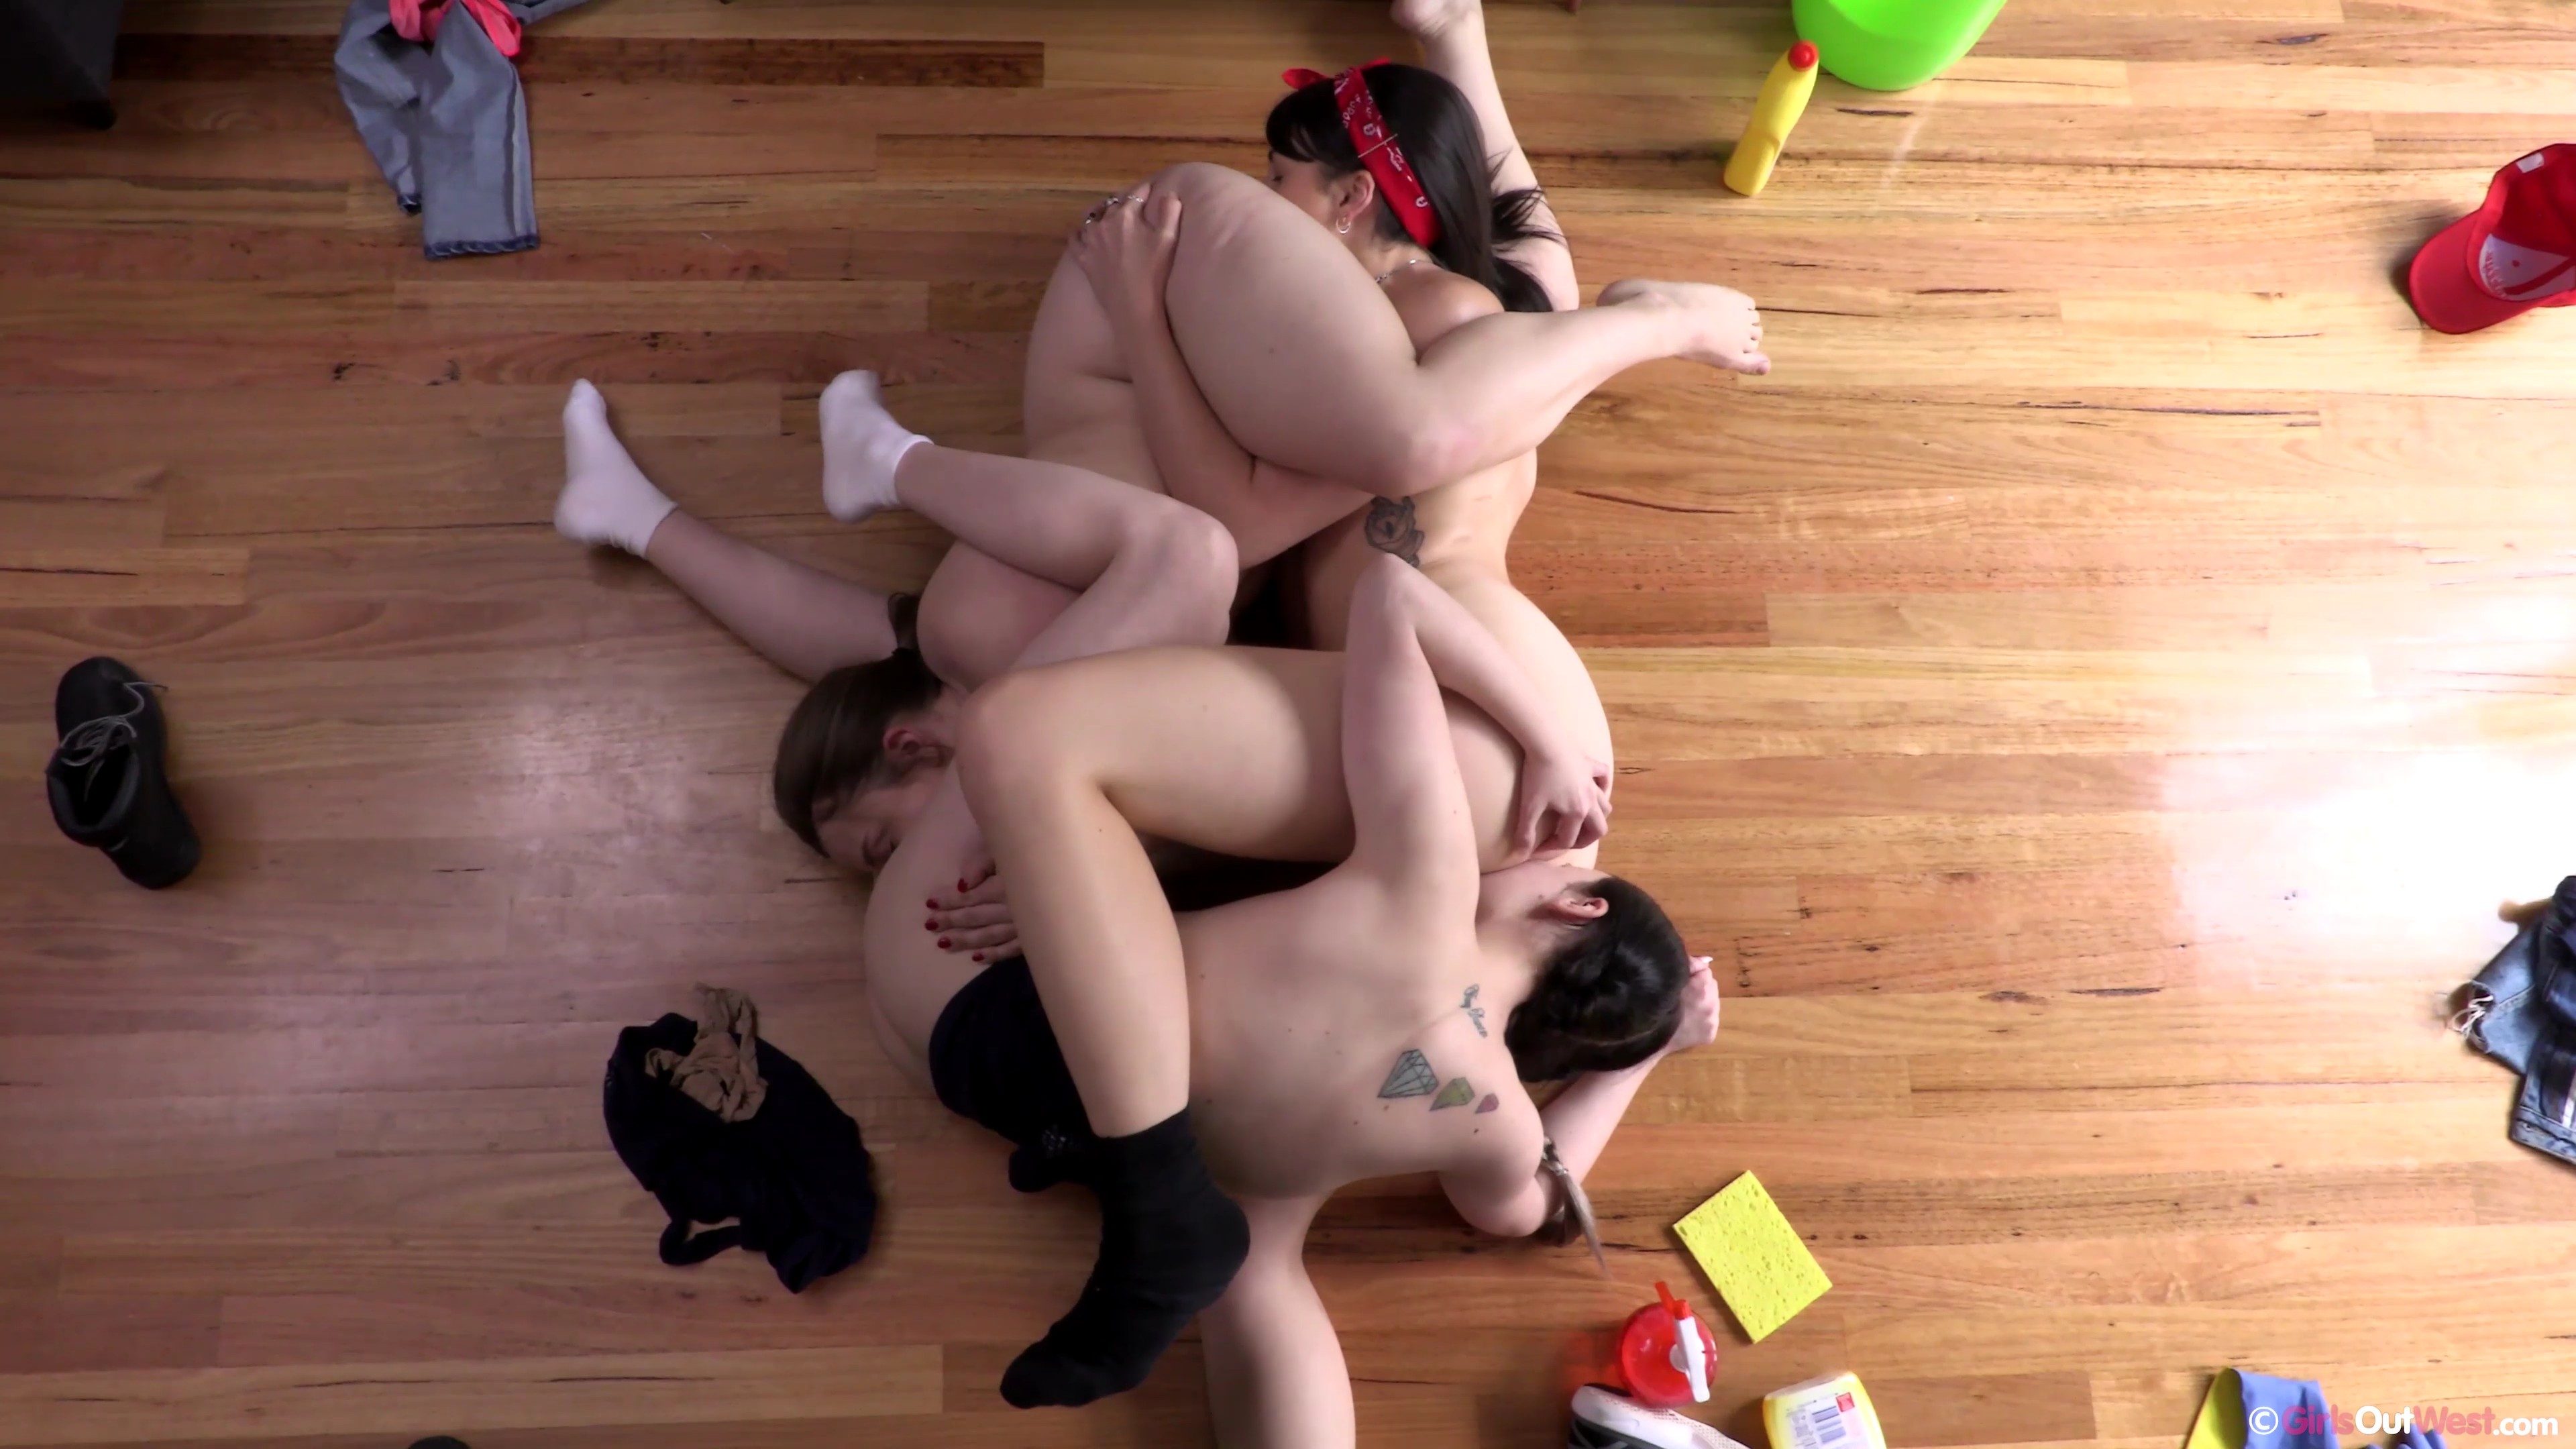 a group of adorable next door girls opening their cunts for common pleasure  #5